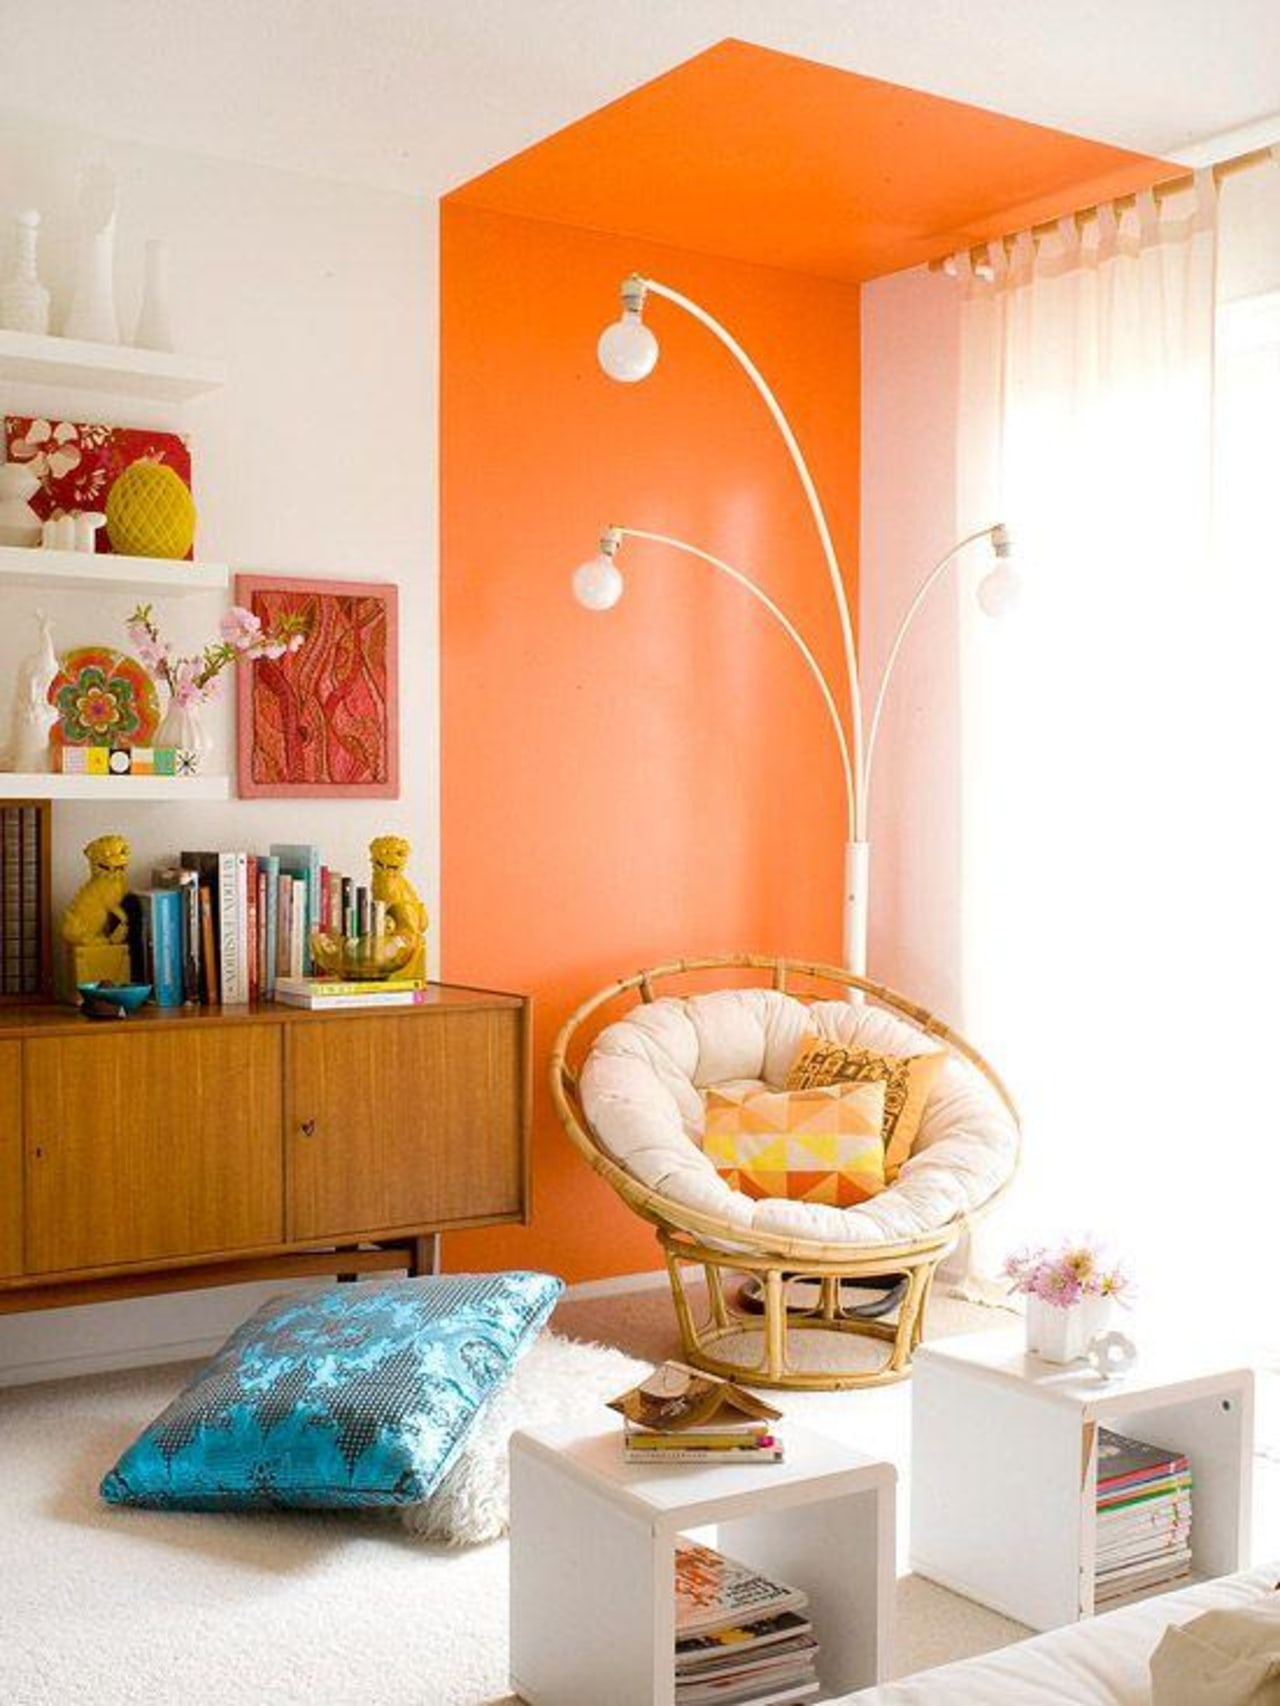 While open plan living remains ever popular, we building, furniture, home, house, interior design, living room, orange, peach, pink, room, shelf, shelving, table, wall, yellow, white, orange